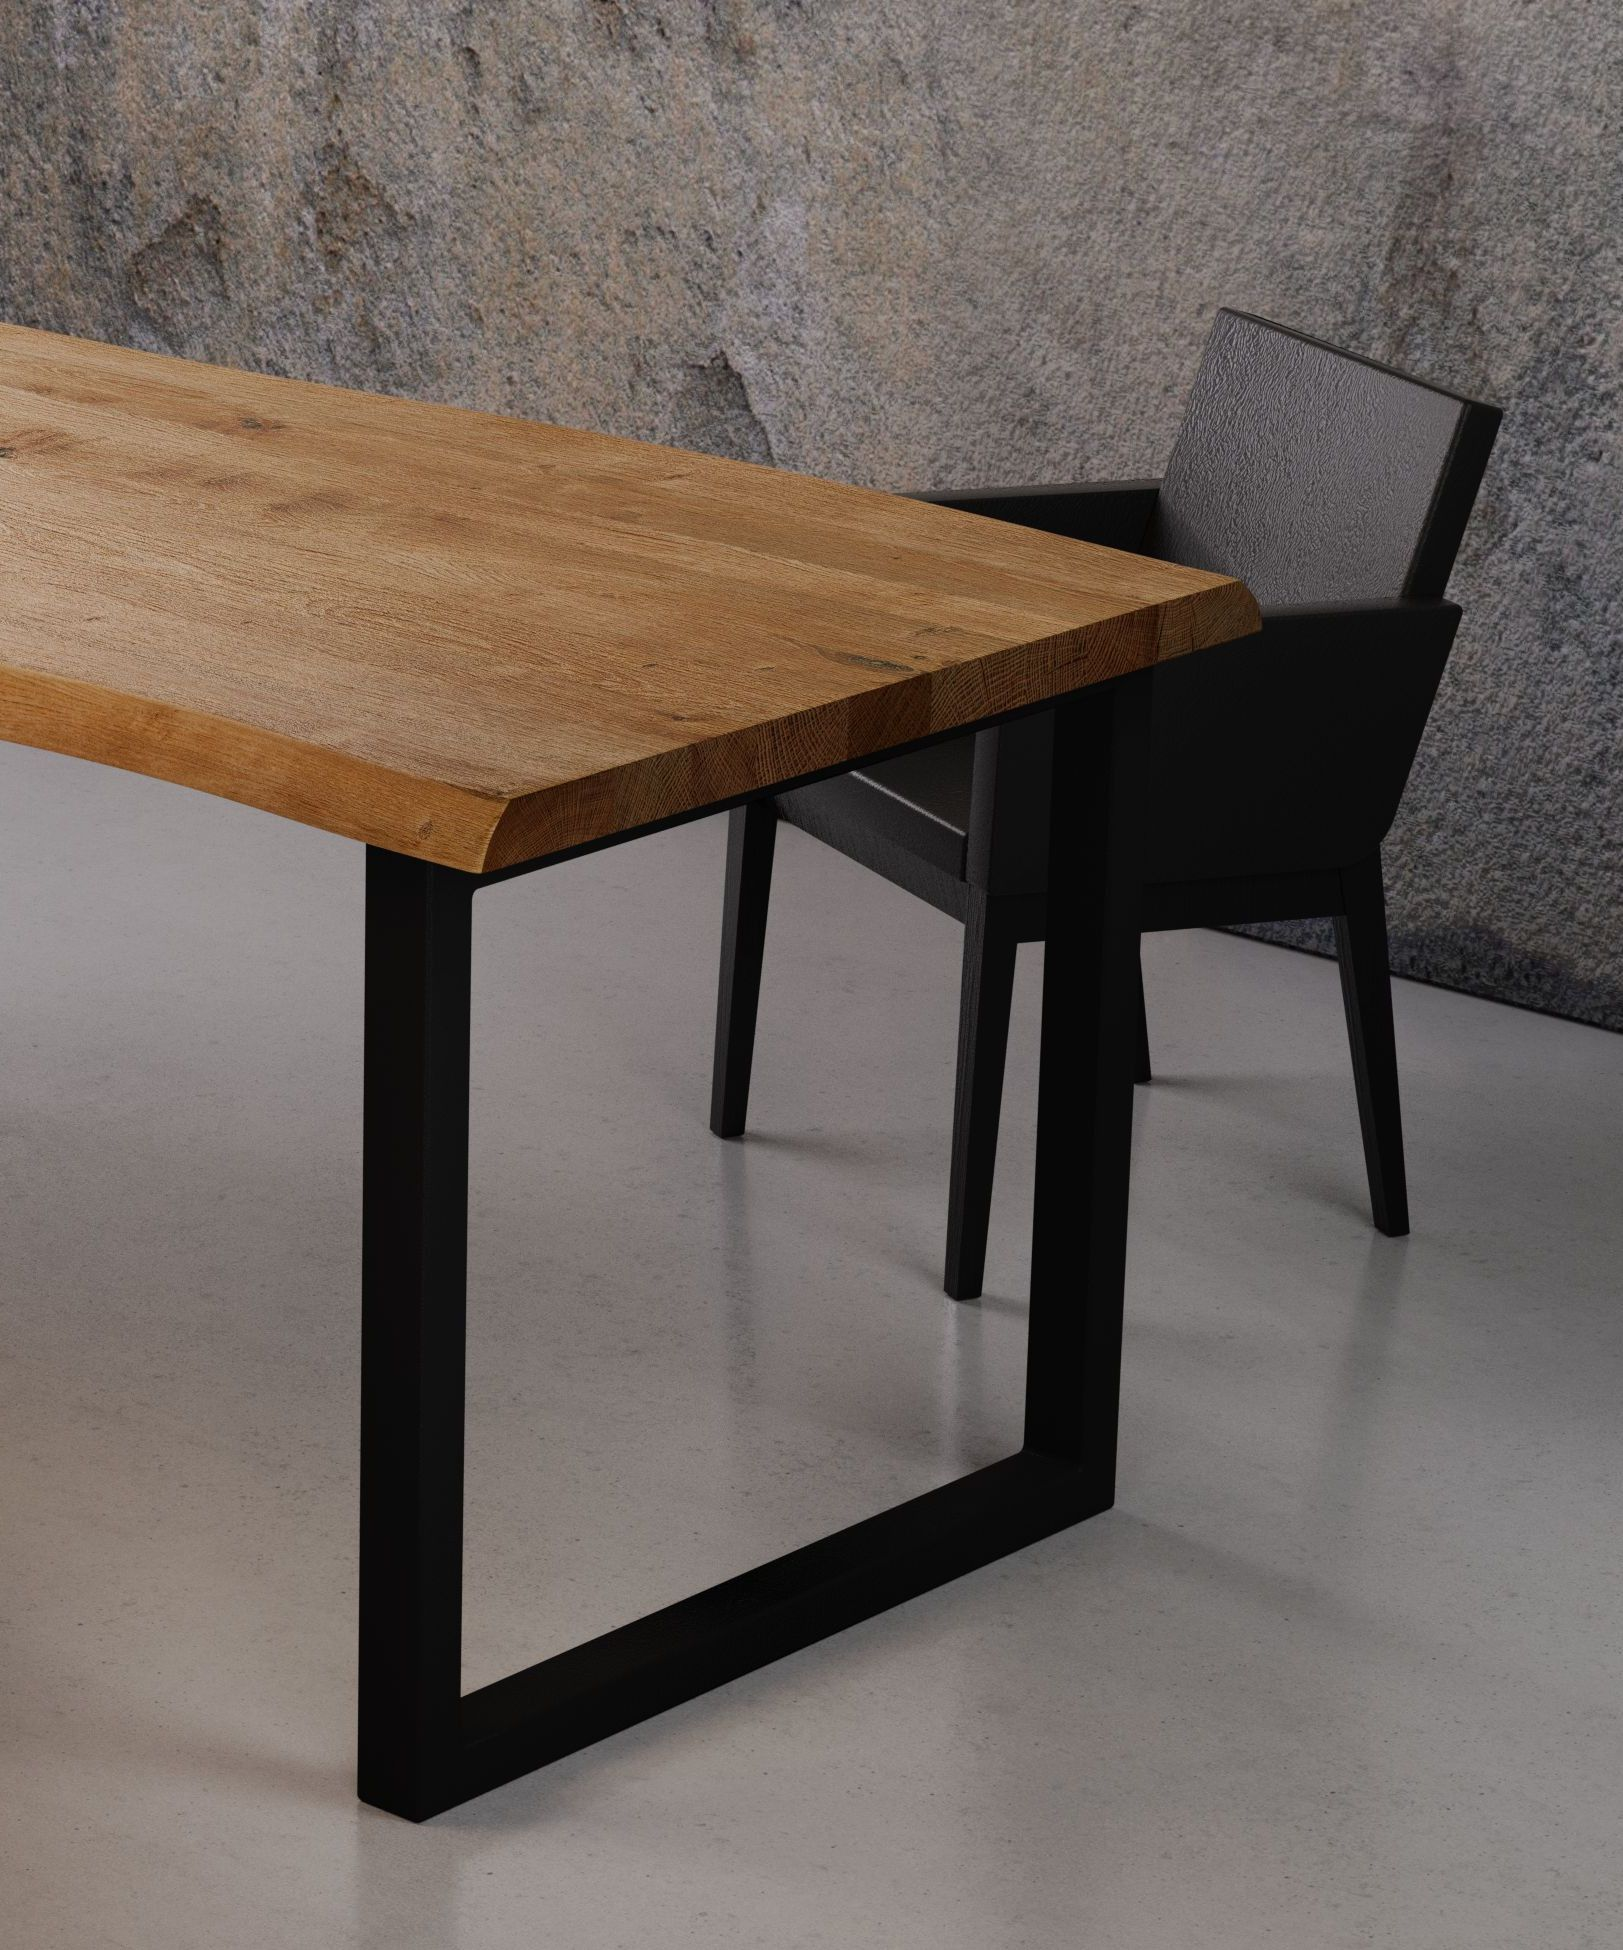 Dining Table Made Of Raw Wood, R Black Industrial And